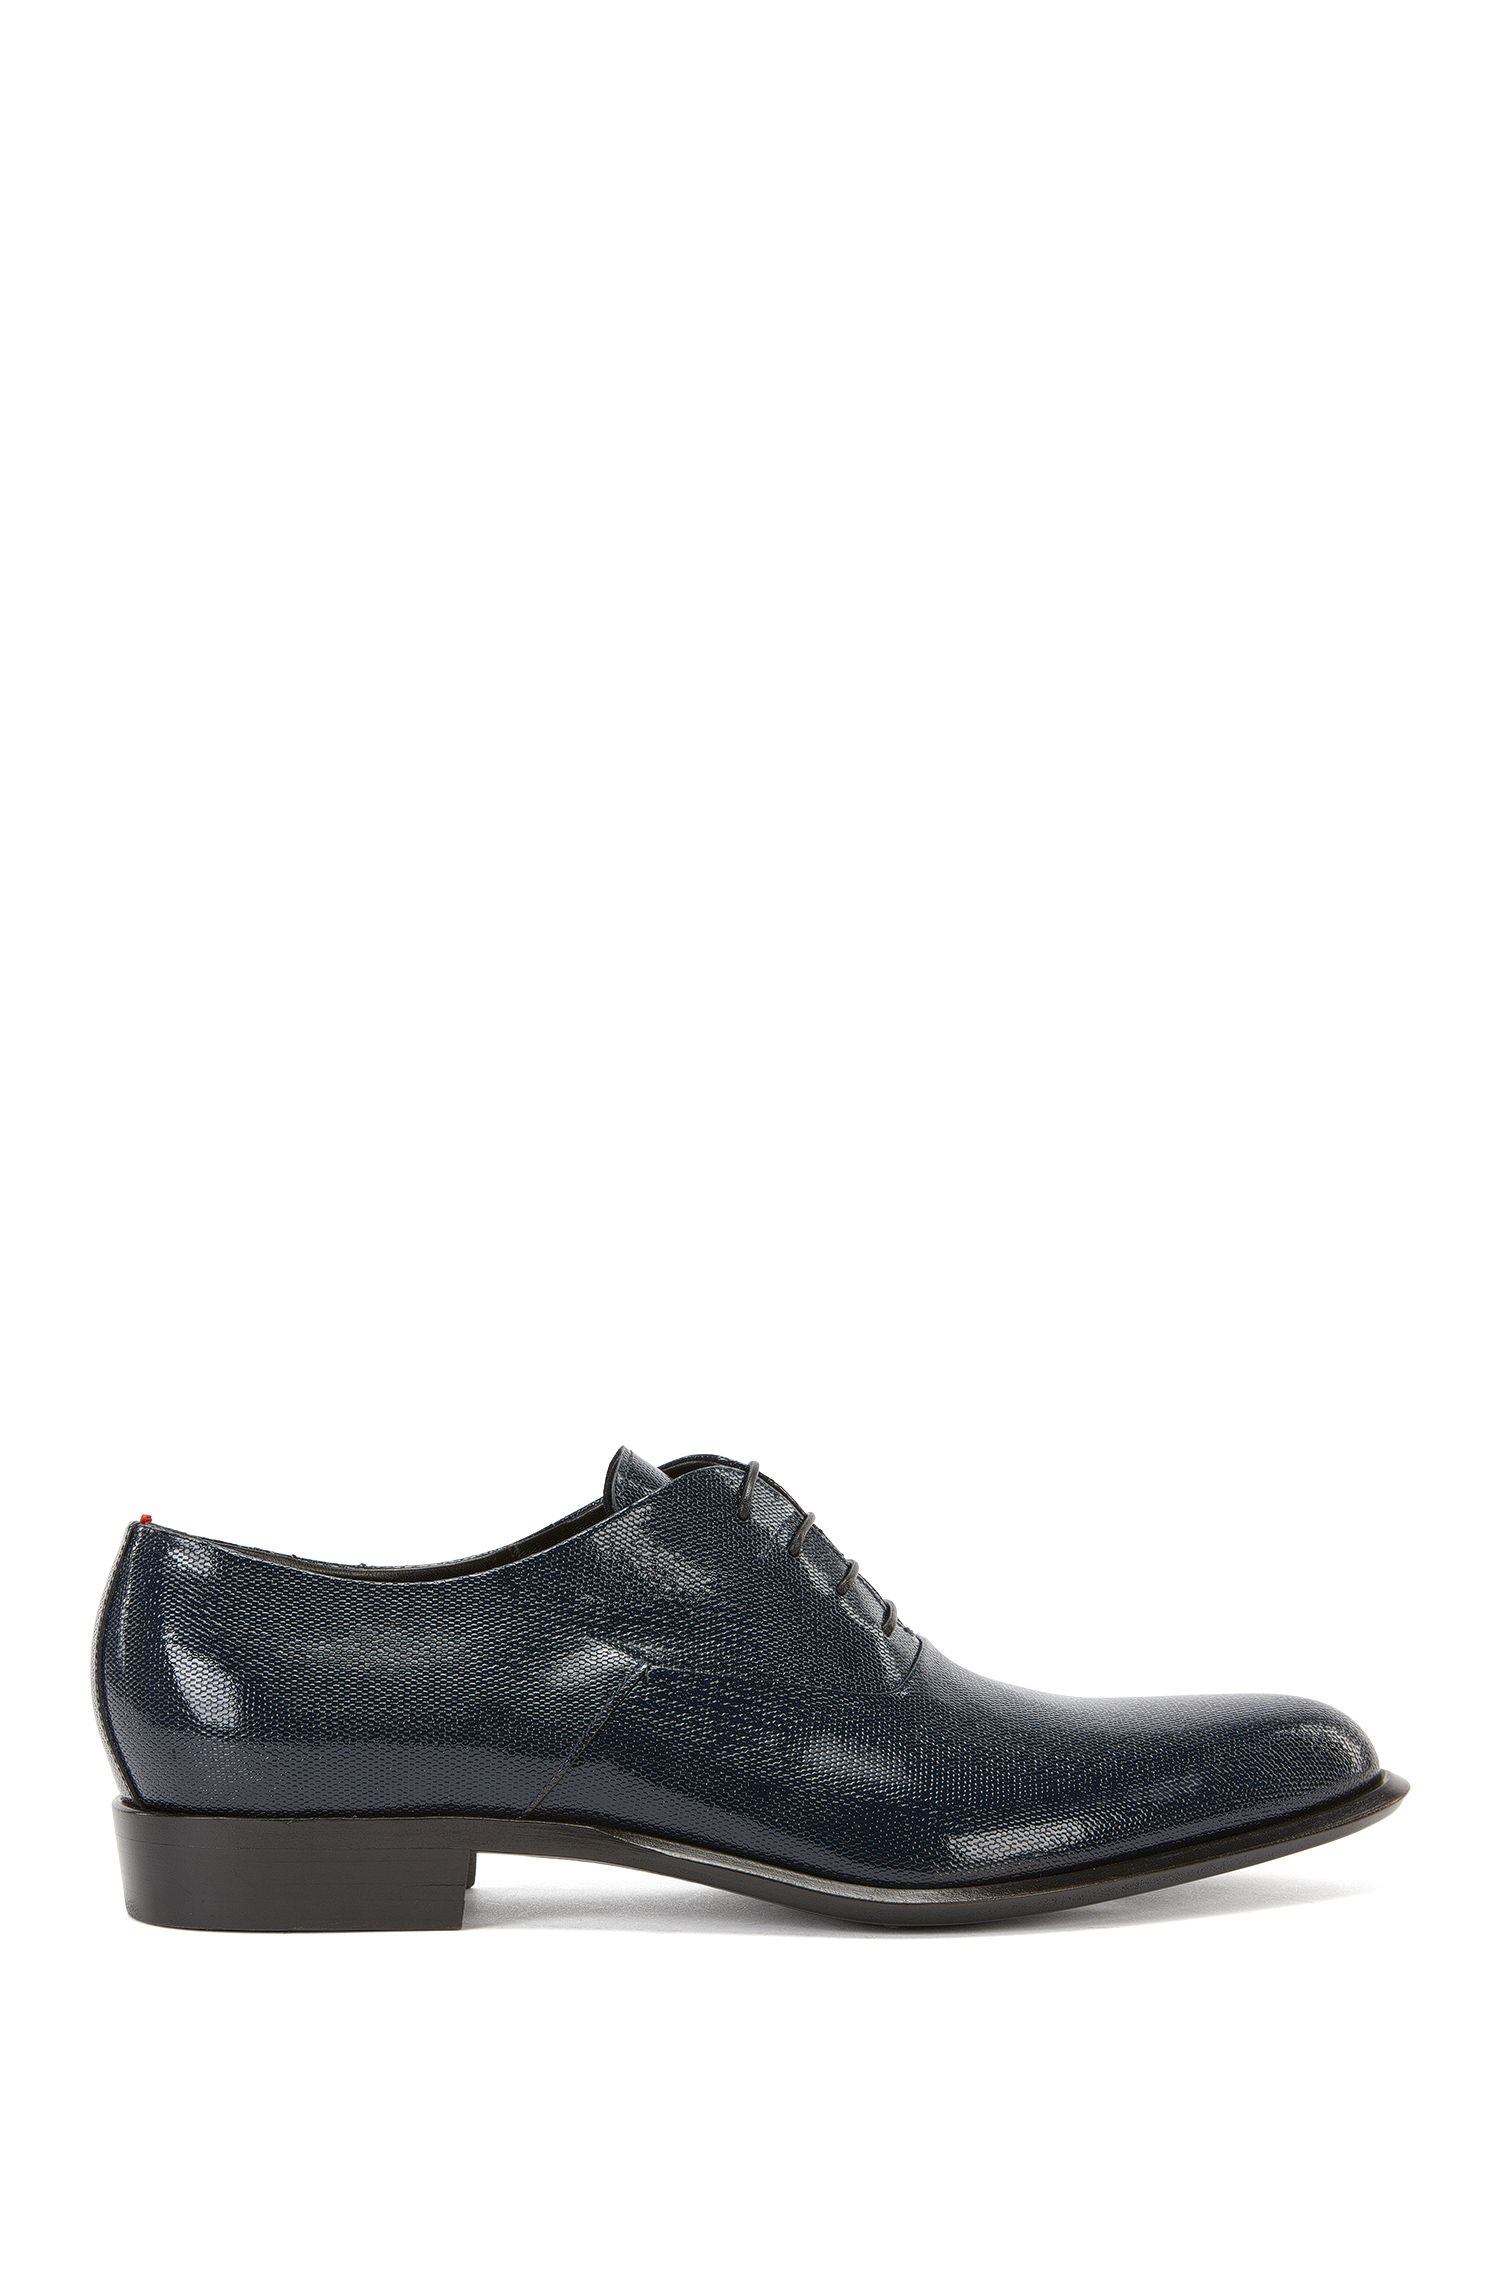 Scarpe Oxford stringate in pelle stampata